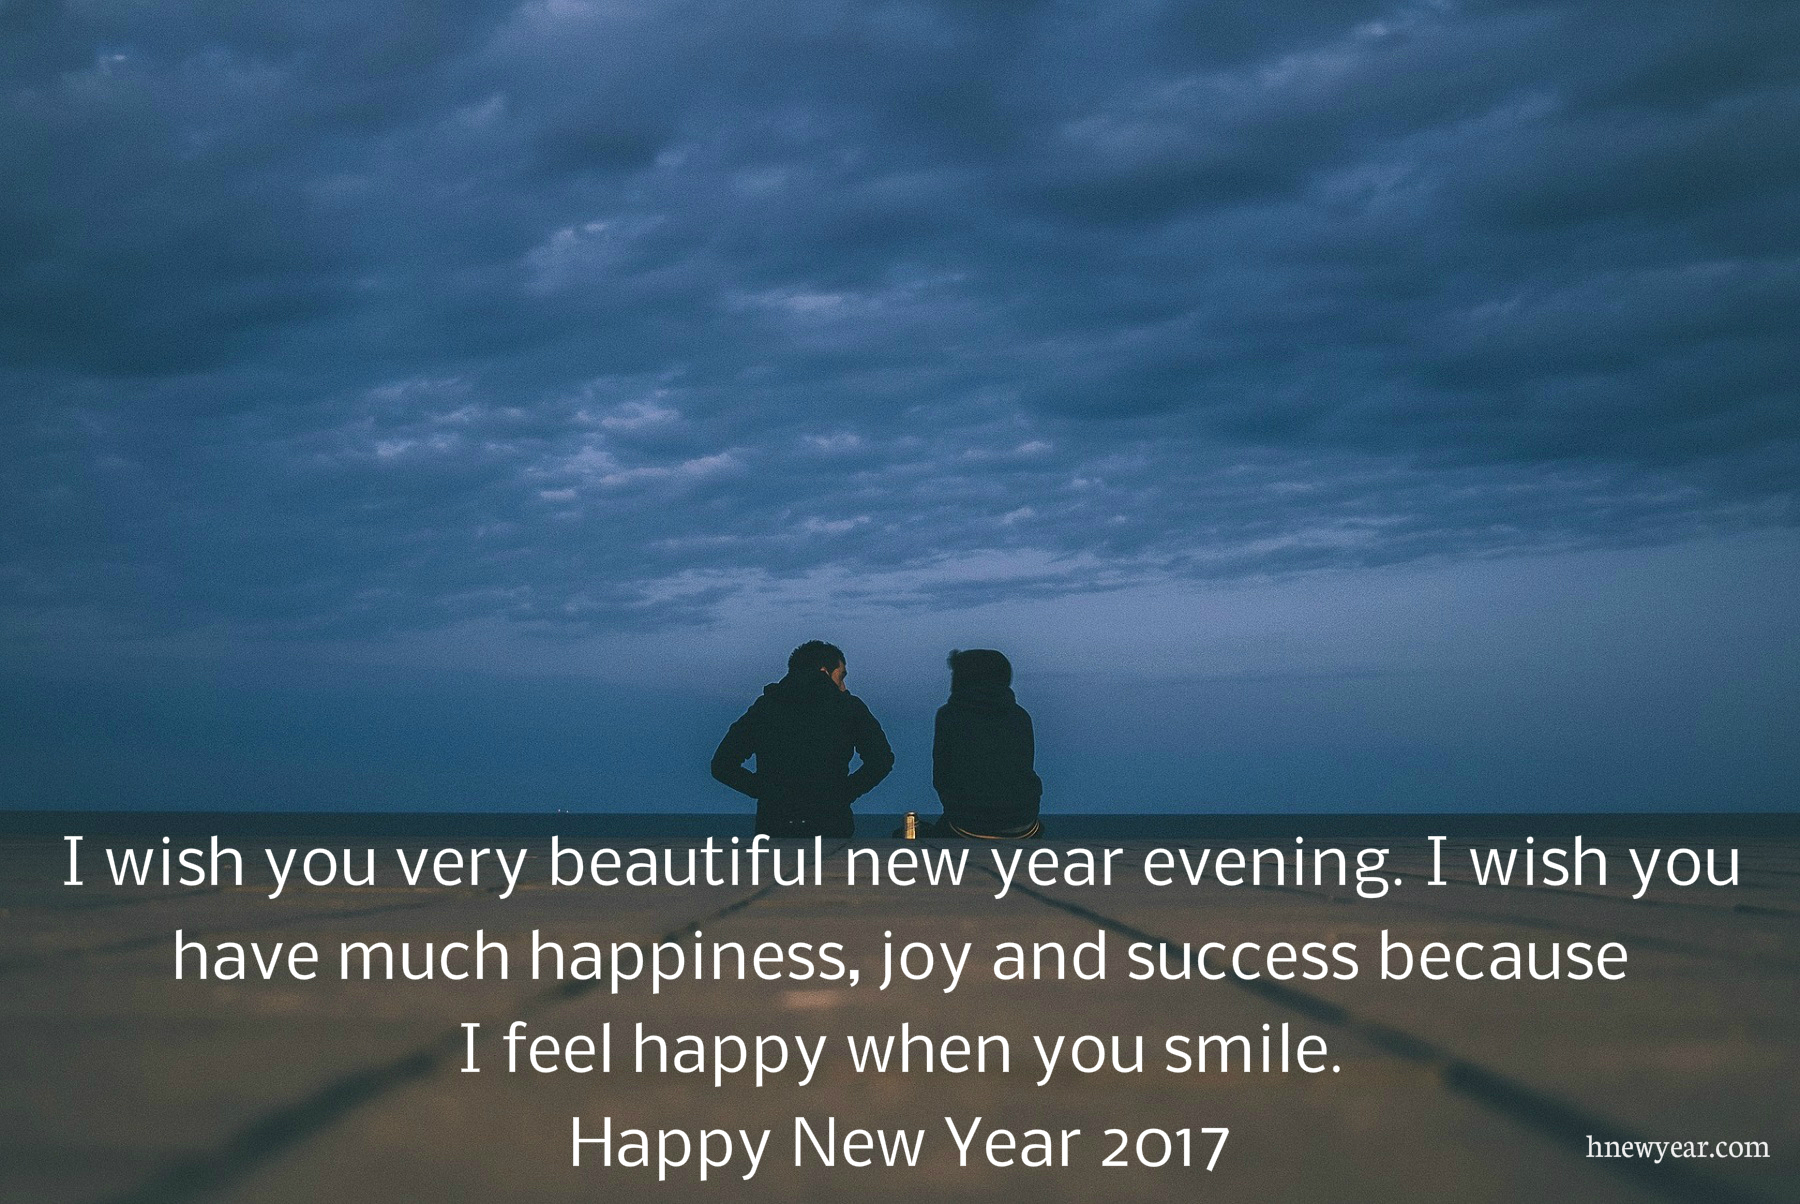 i wish you very beautiful new year evening i wish you have much happiness joy and success because i feel happy when you smile happy new year